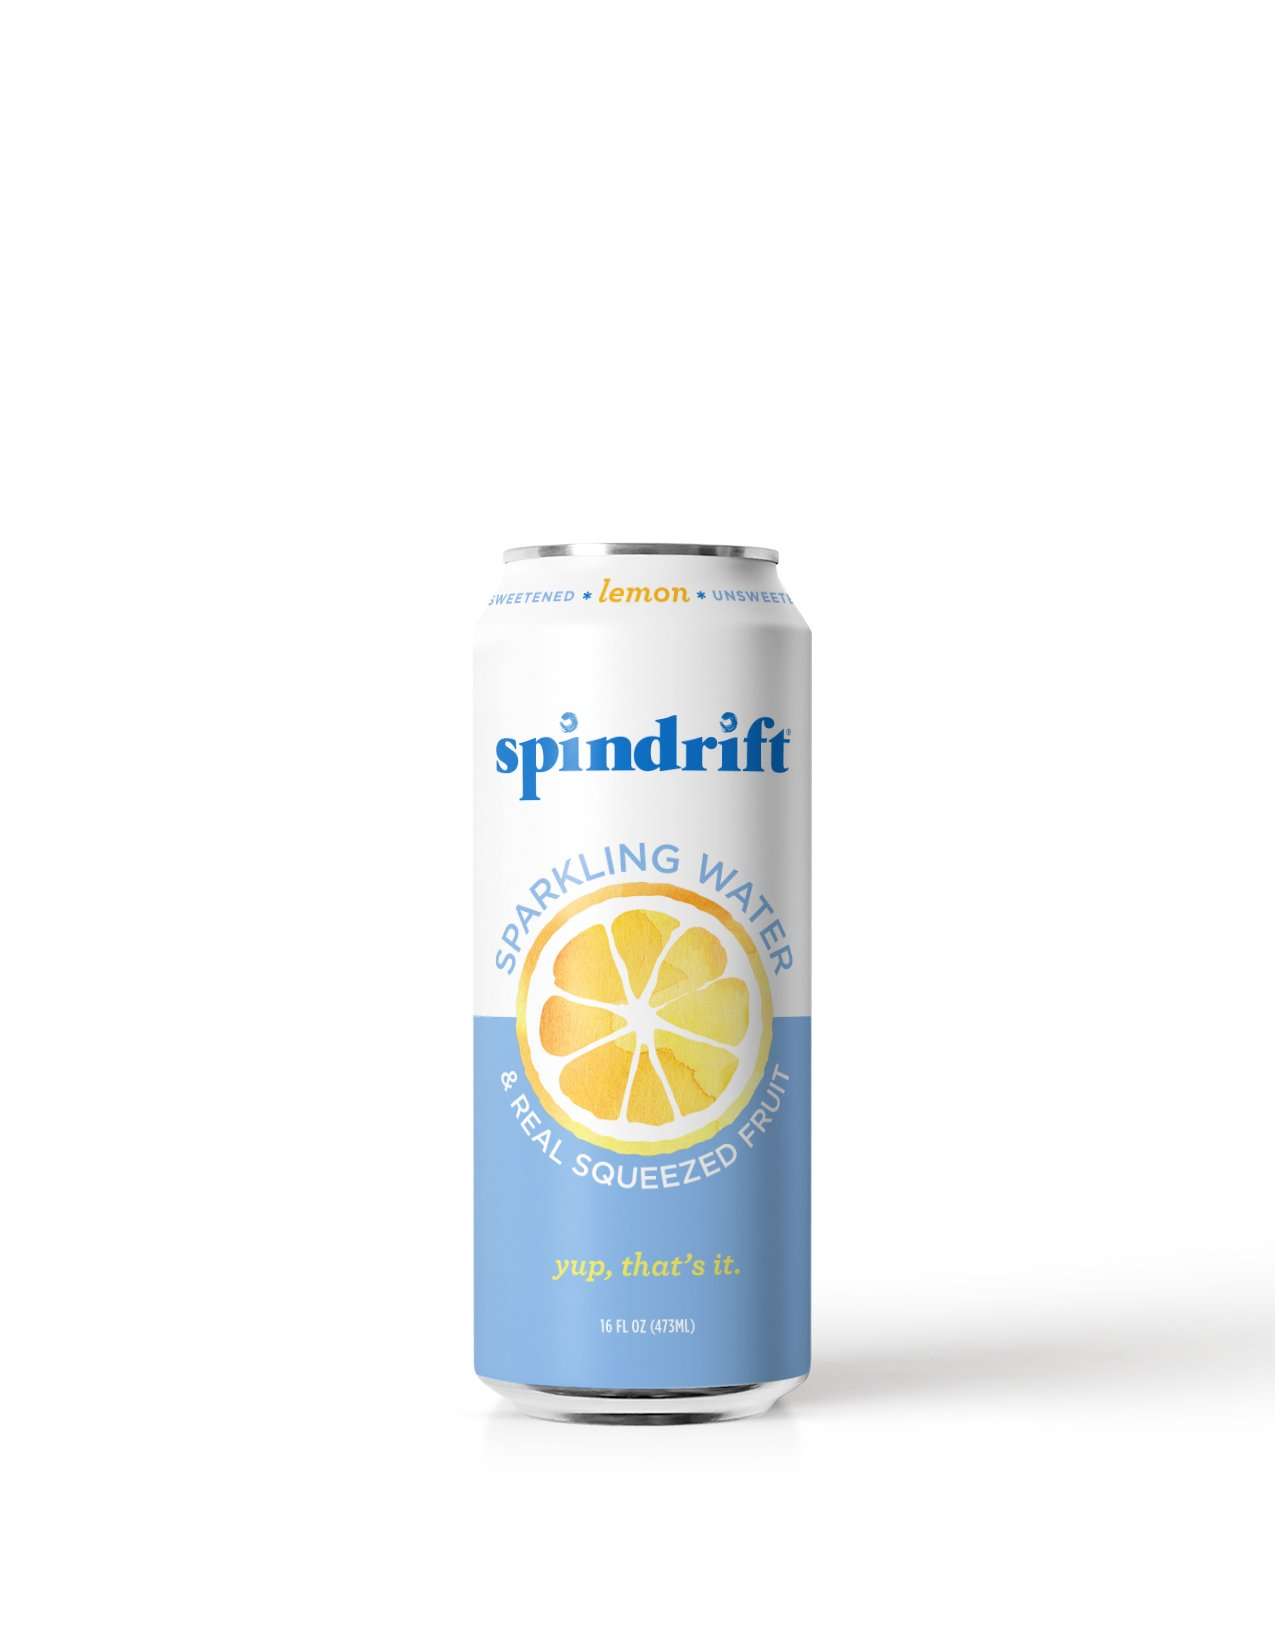 Spindrift Lemon Sparkling Water, 16-Fluid-Ounce Cans, Pack of 12